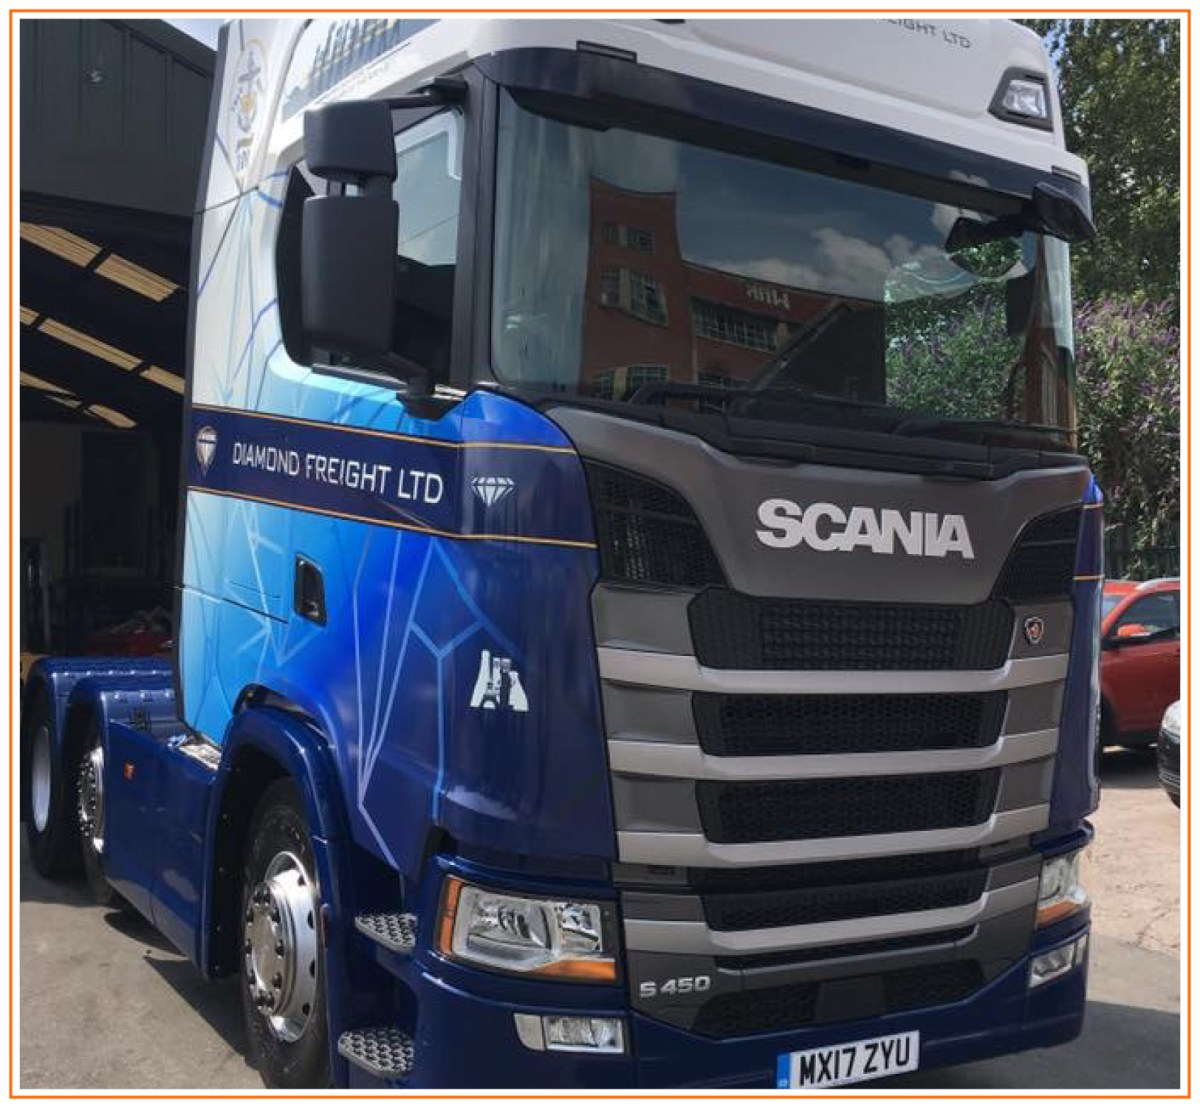 https://i1.wp.com/haultech.co.uk/wp-content/uploads/2021/07/HaulTech-Support-Diamond-Freight-with-Great-Customer-Service-and-DVS-Solutions.jpg?fit=1200%2C1108&ssl=1